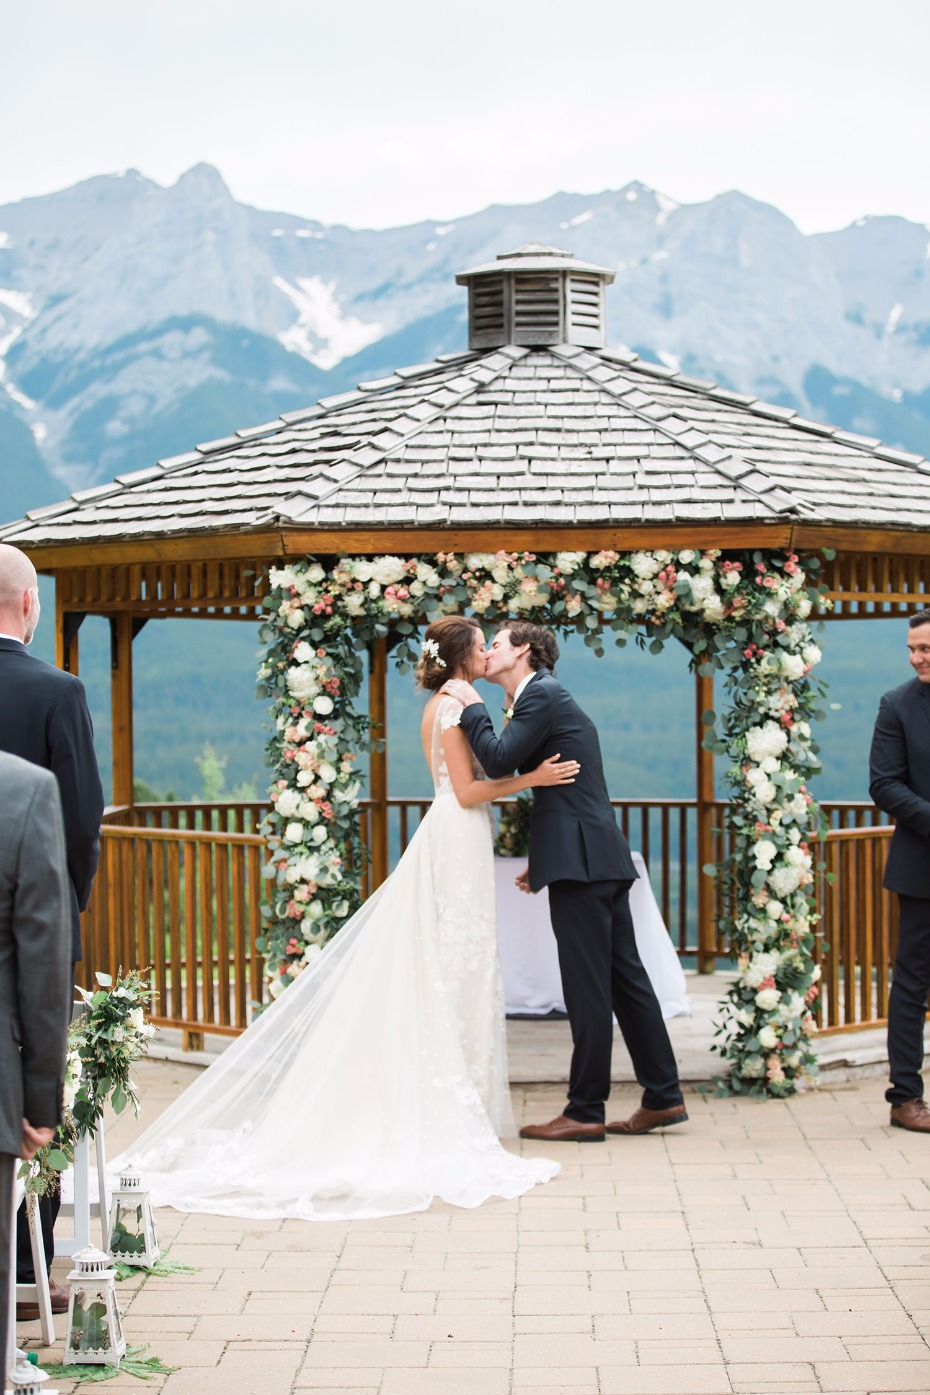 A gazebo wedding in the Canadian Rockies